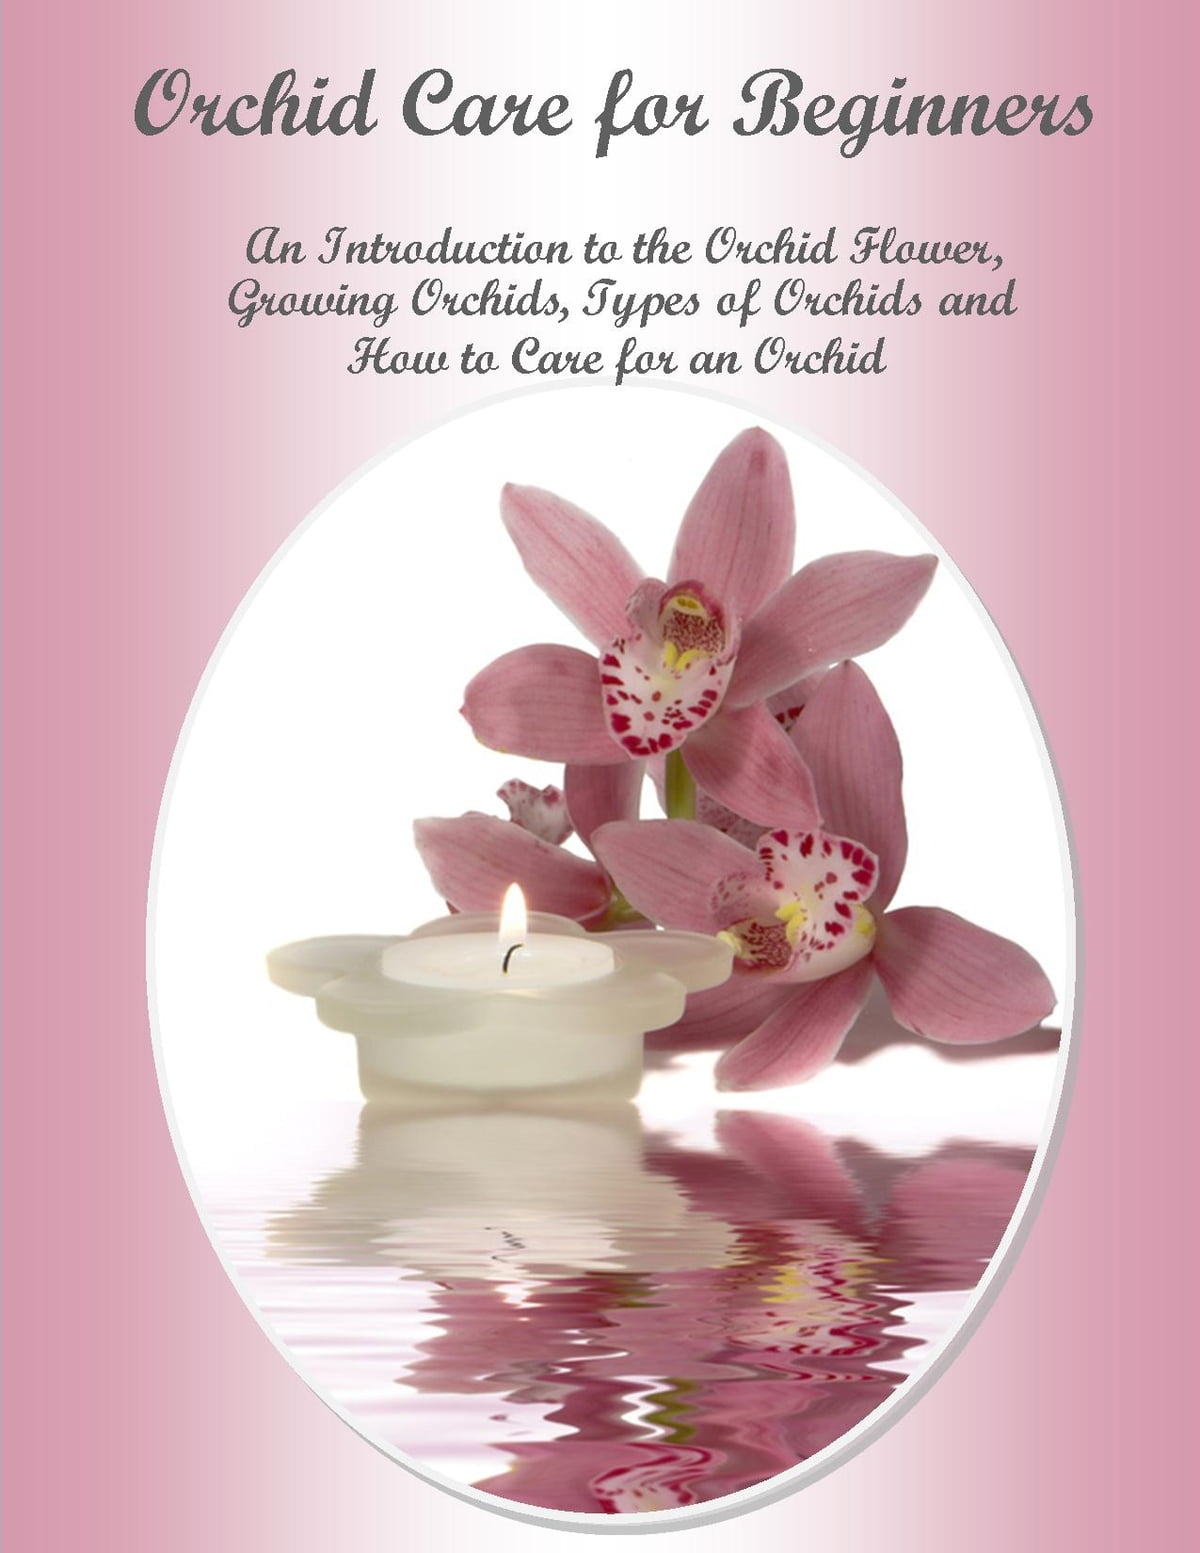 Orchid Care for Beginners An Introduction to the Orchid Flower, Growing Orchids, Types of Orchids and How to Care for an Orchid eBook by Julia Stewart ...